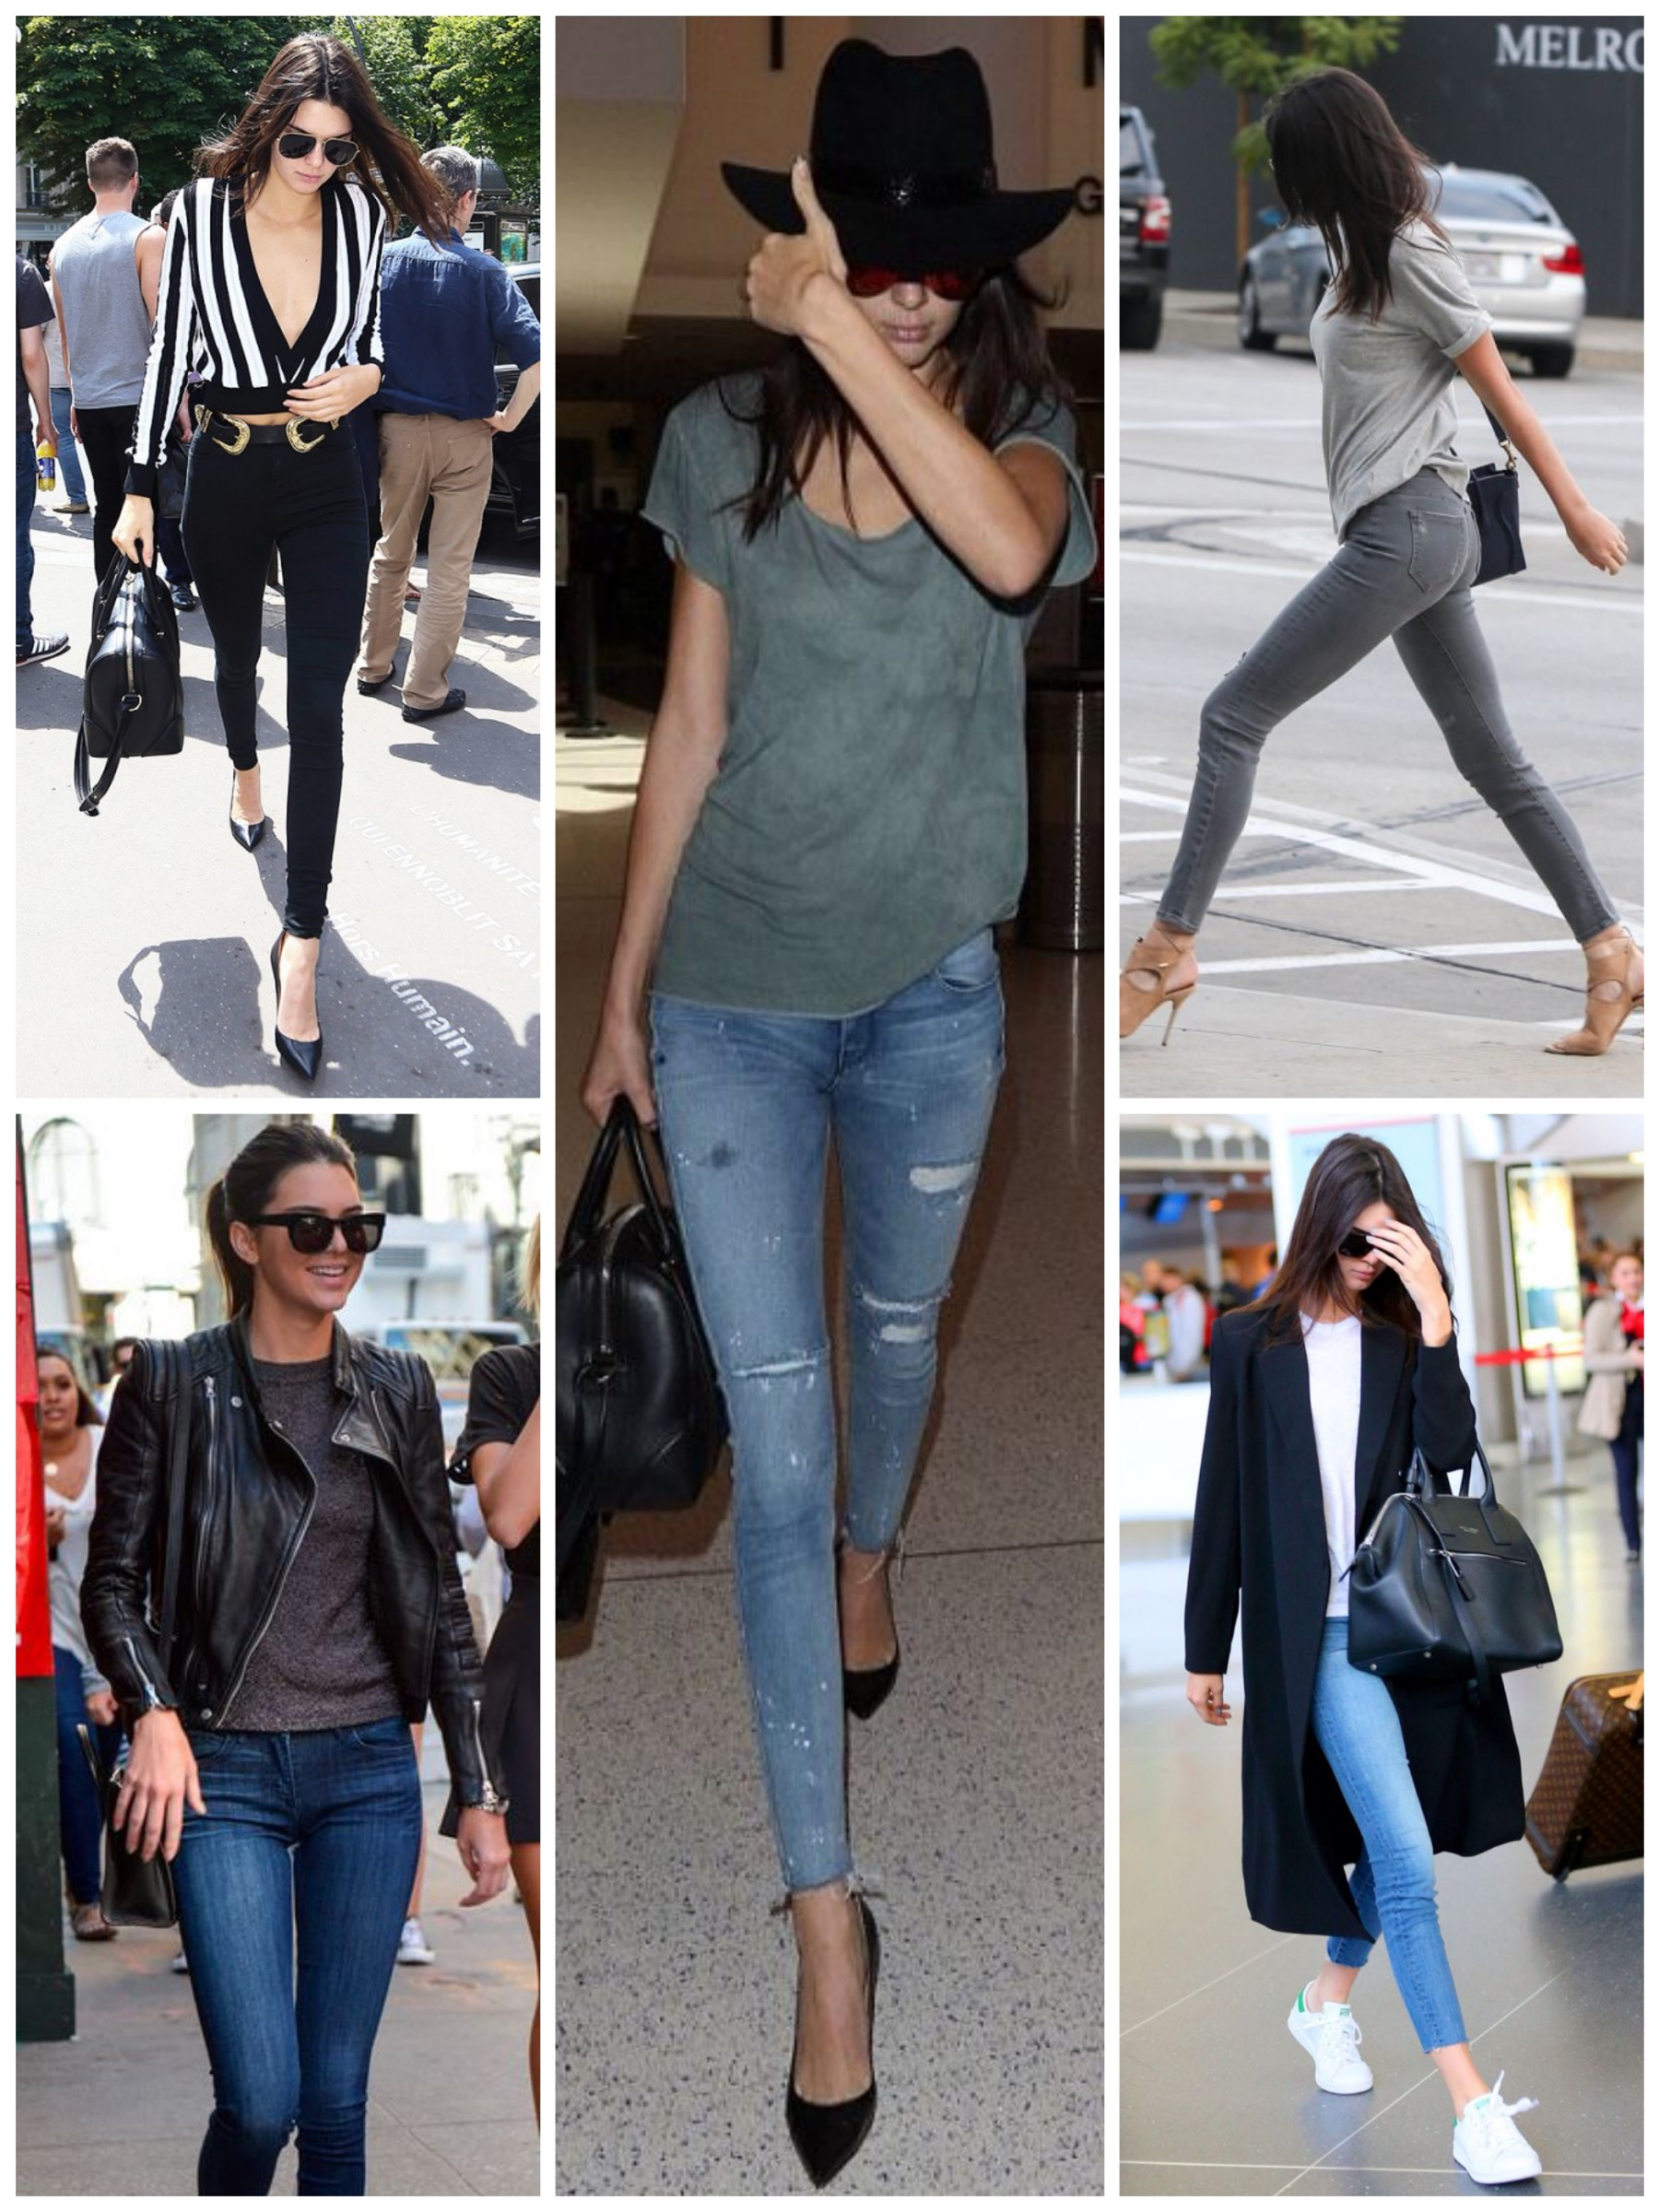 Casual with jeans - Kendall Jenner